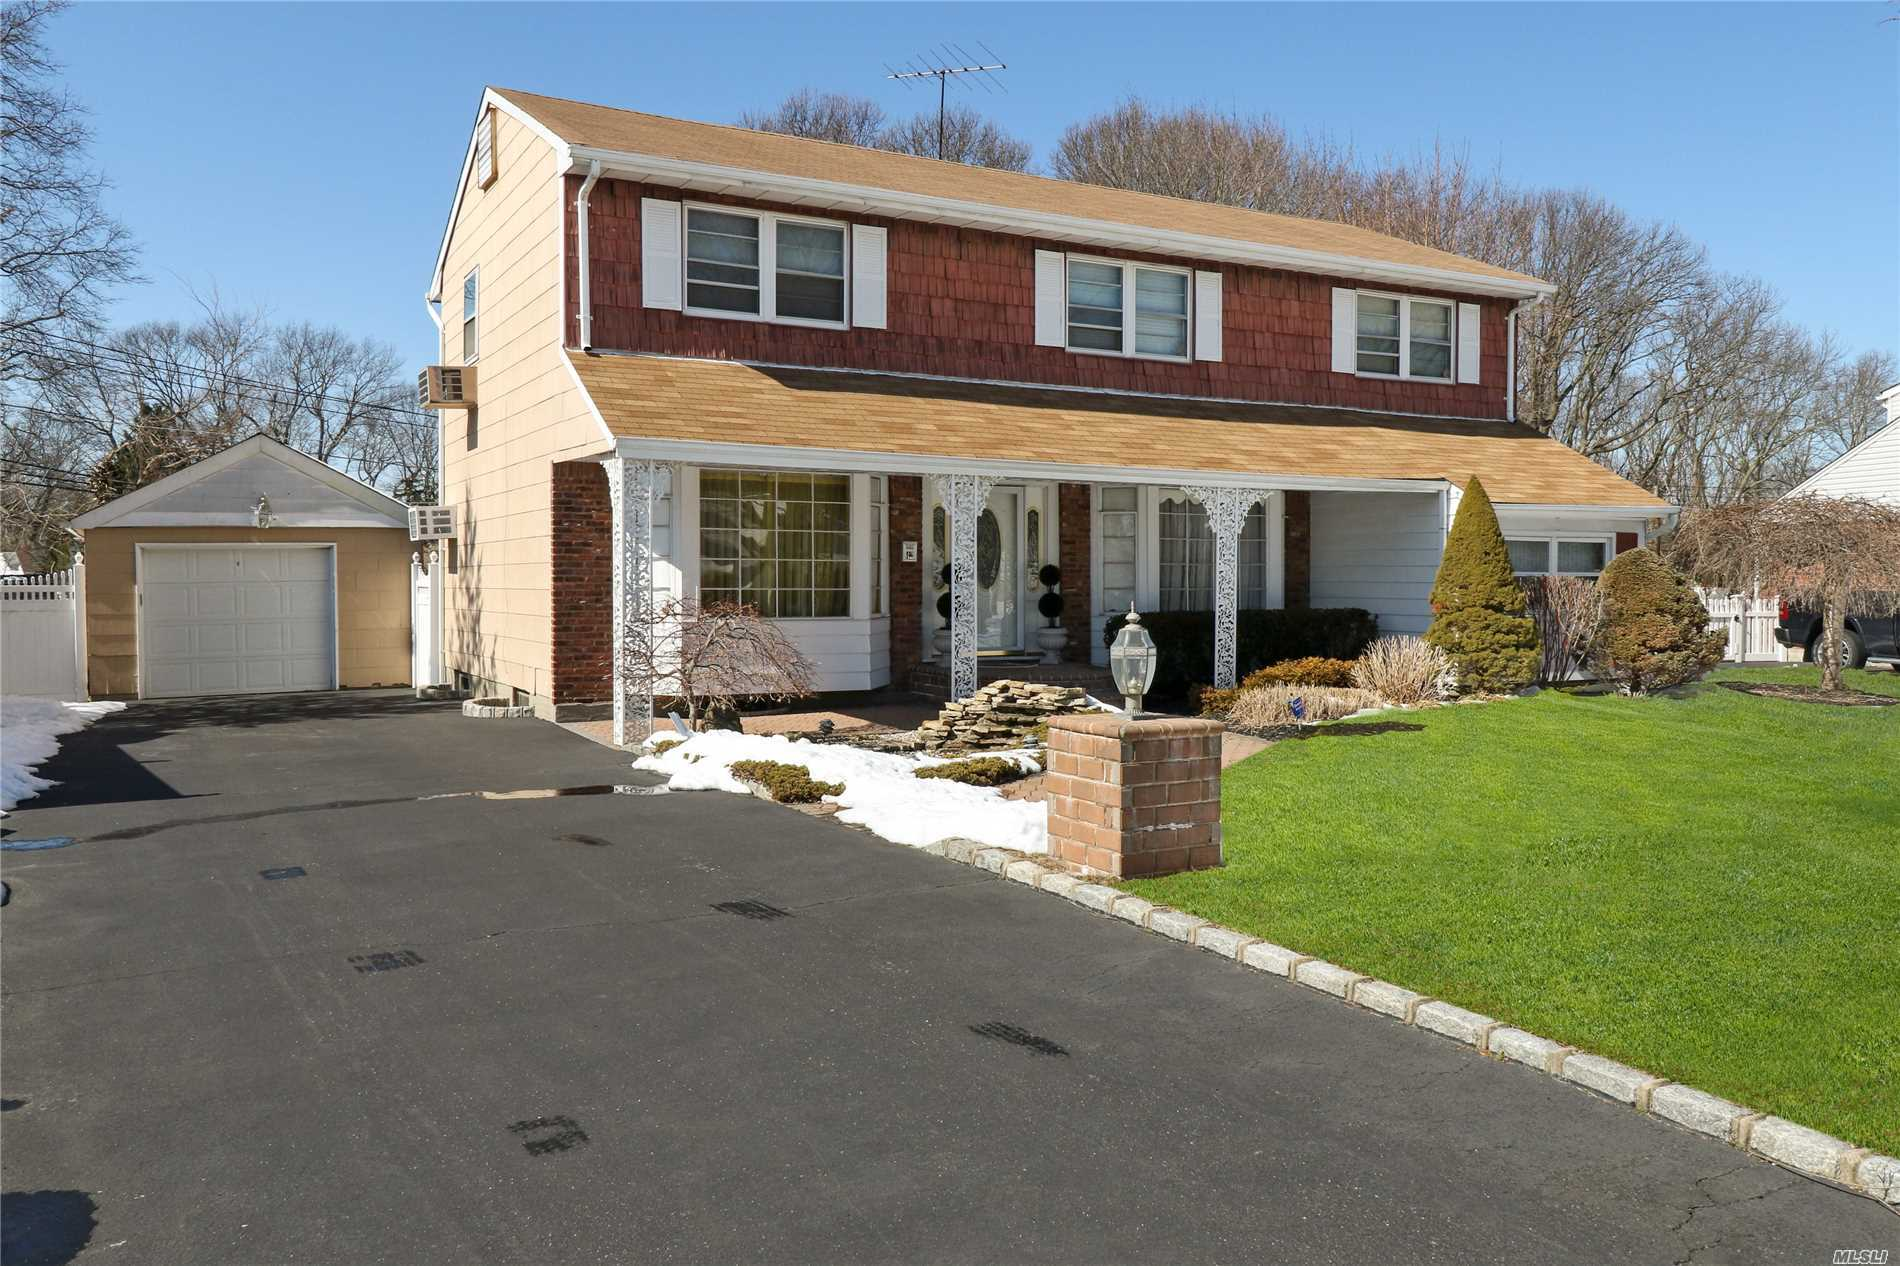 Spacious and wonderful 4 bed Center Hall Colonial set on .28 acre of pristine property. All hardwood floors throughout. Updated kitchen/some newer windows/tons of closet space/new doors throughout/Gas lines in font of house/PVC fence around entire property/travertine patio/ koi pond/Ideal location all within the famed Commack Blue Ribbon school district. Basic star is $1, 202.97.